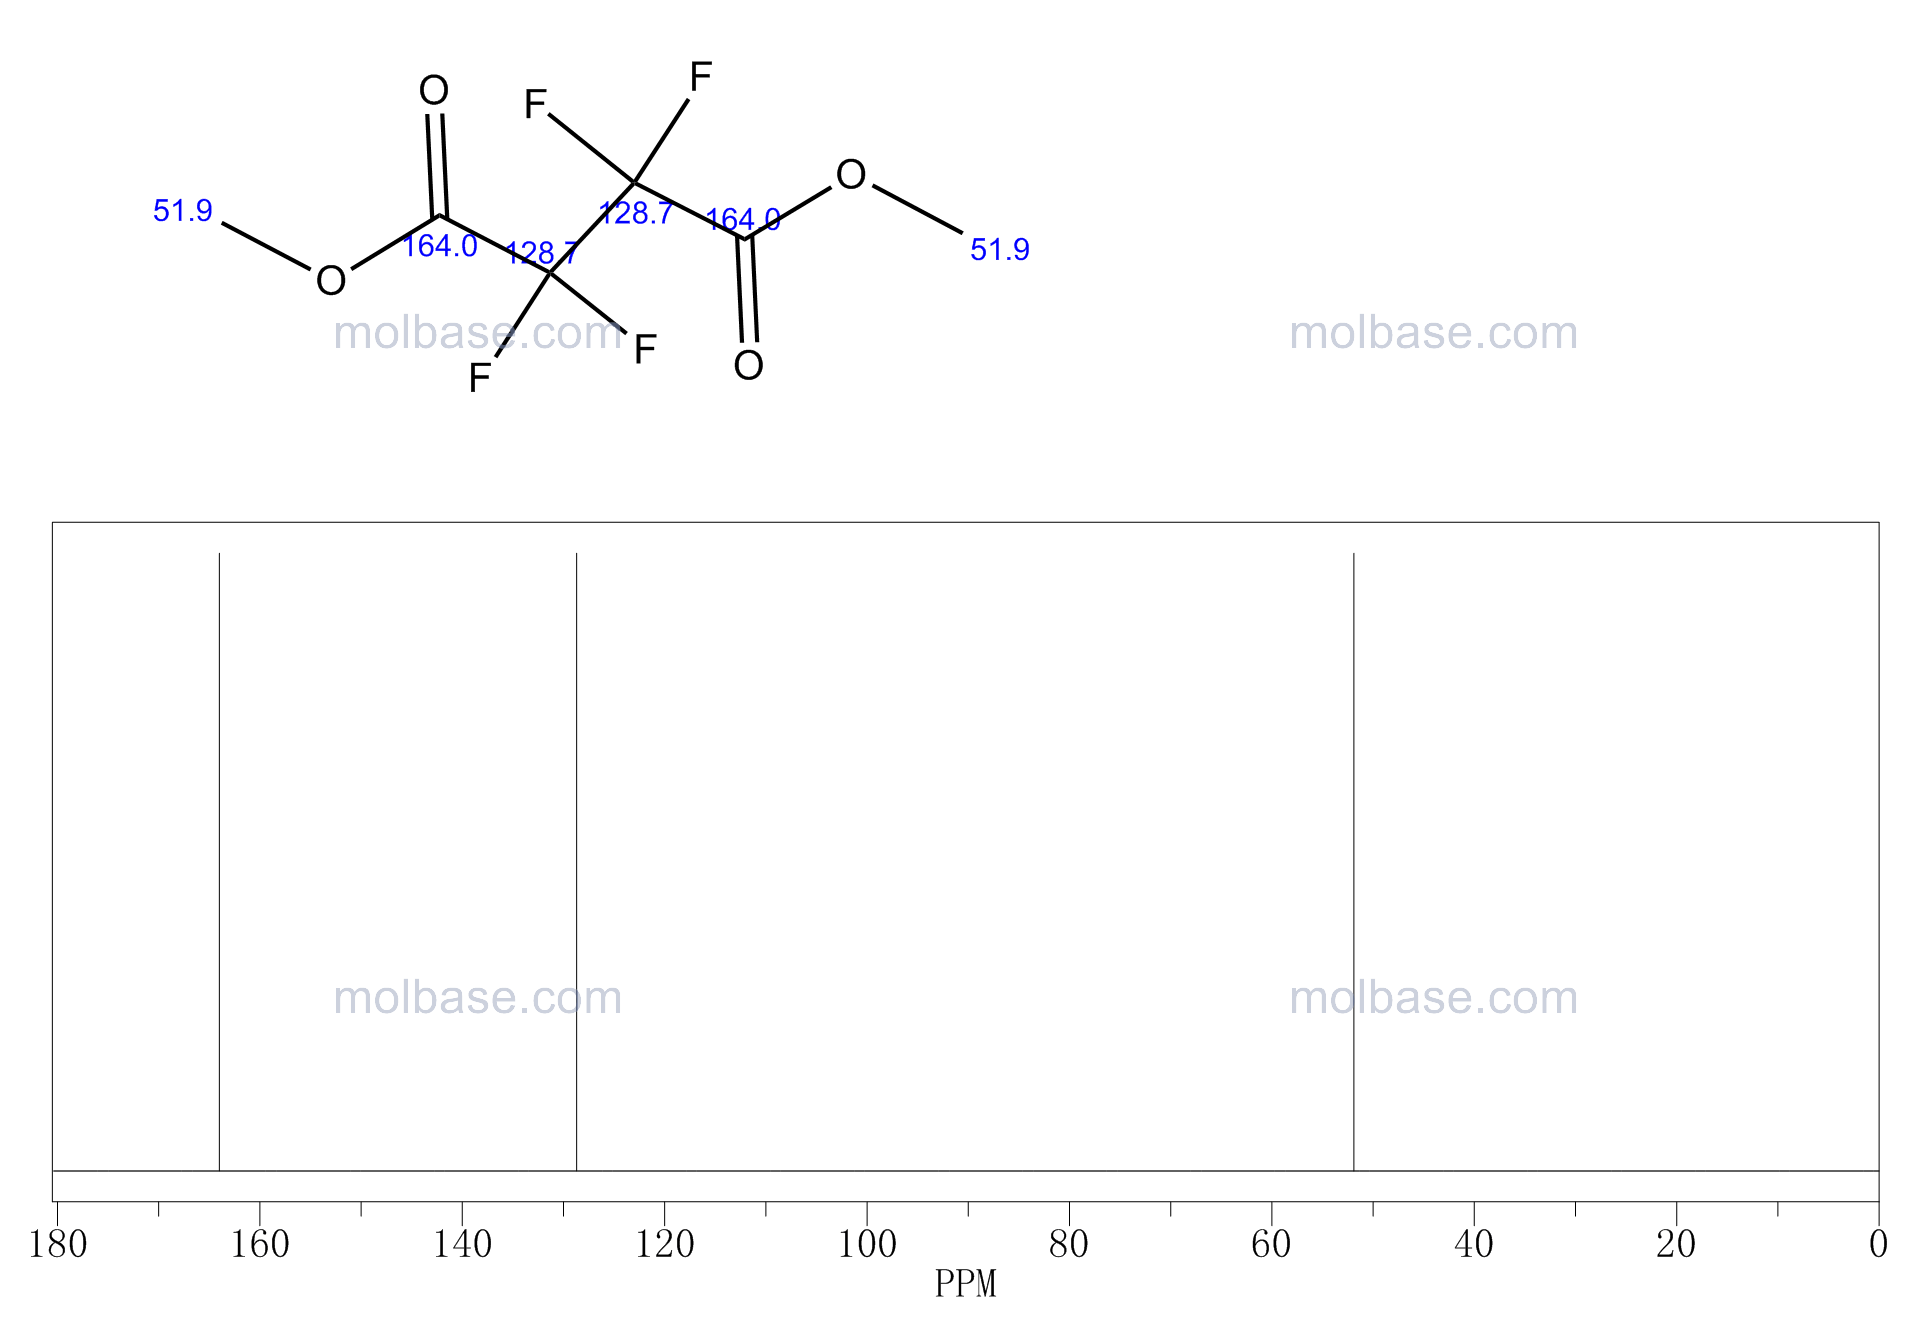 dimethyl 2,2,3,3-tetrafluorobutanedioate NMR spectra analysis, Chemical CAS NO. 356-36-5 NMR spectral analysis, dimethyl 2,2,3,3-tetrafluorobutanedioate C-NMR spectrum